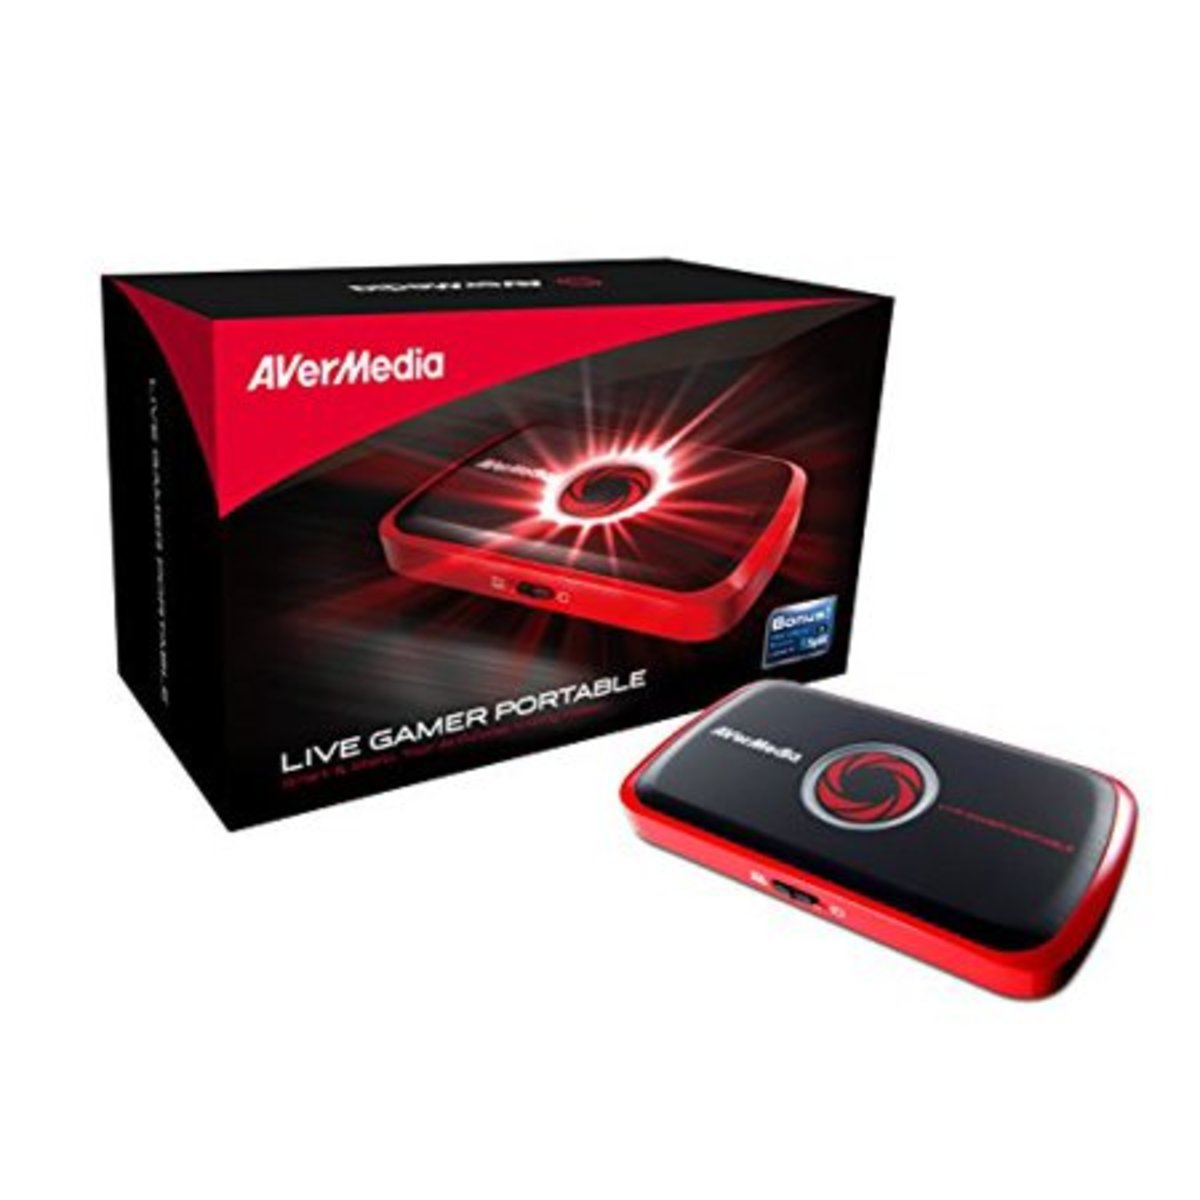 Video Capture Card Review: Avermedia Live Gamer Portable